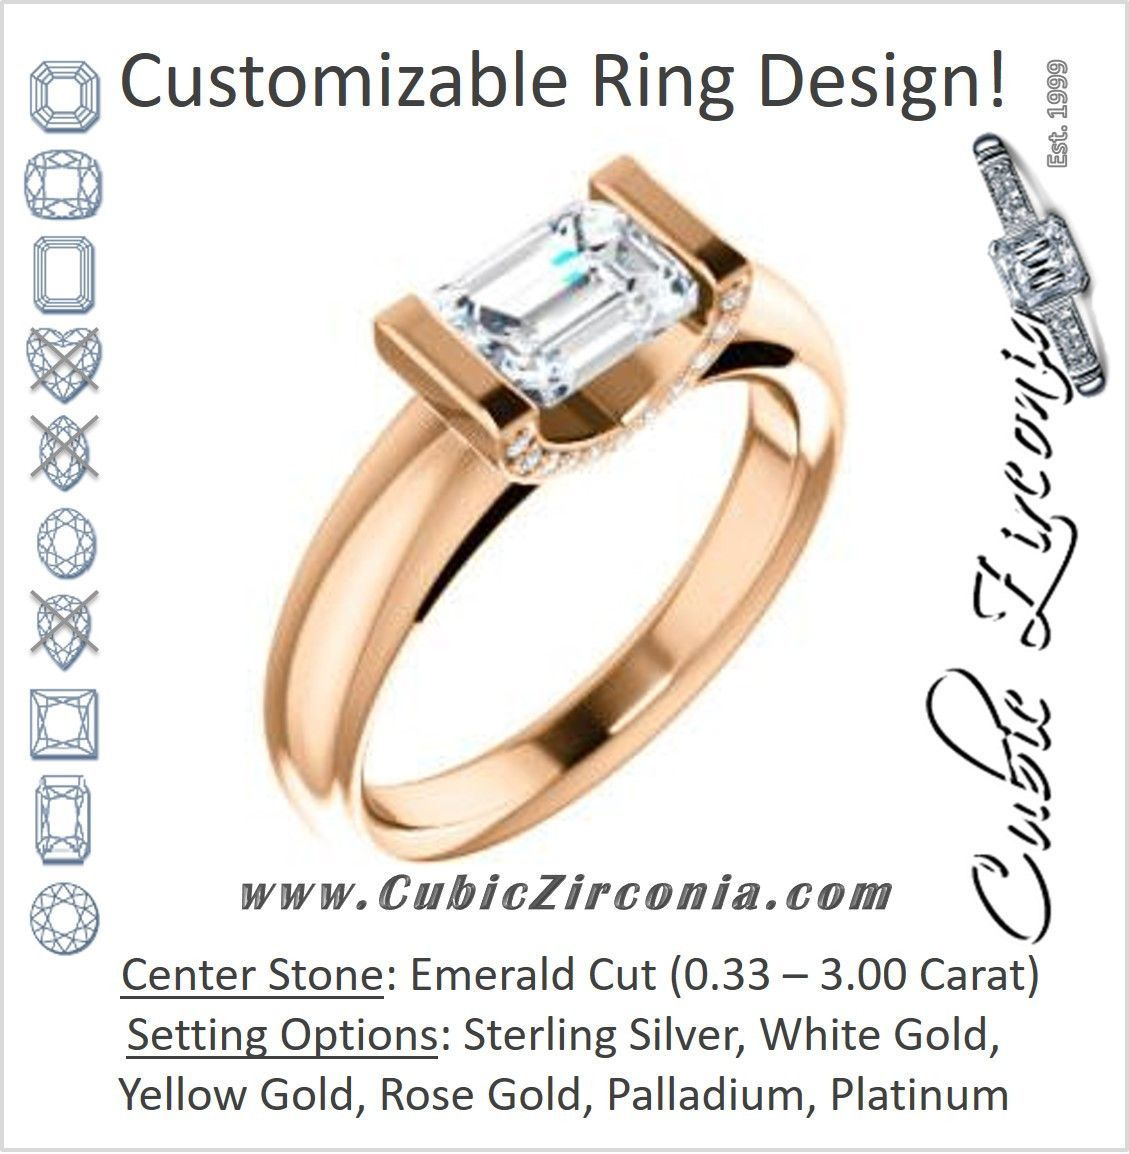 Cubic Zirconia Engagement Ring- The Tory (Customizable Cathedral-style Bar-set Emerald Cut Ring with Prong Accents)